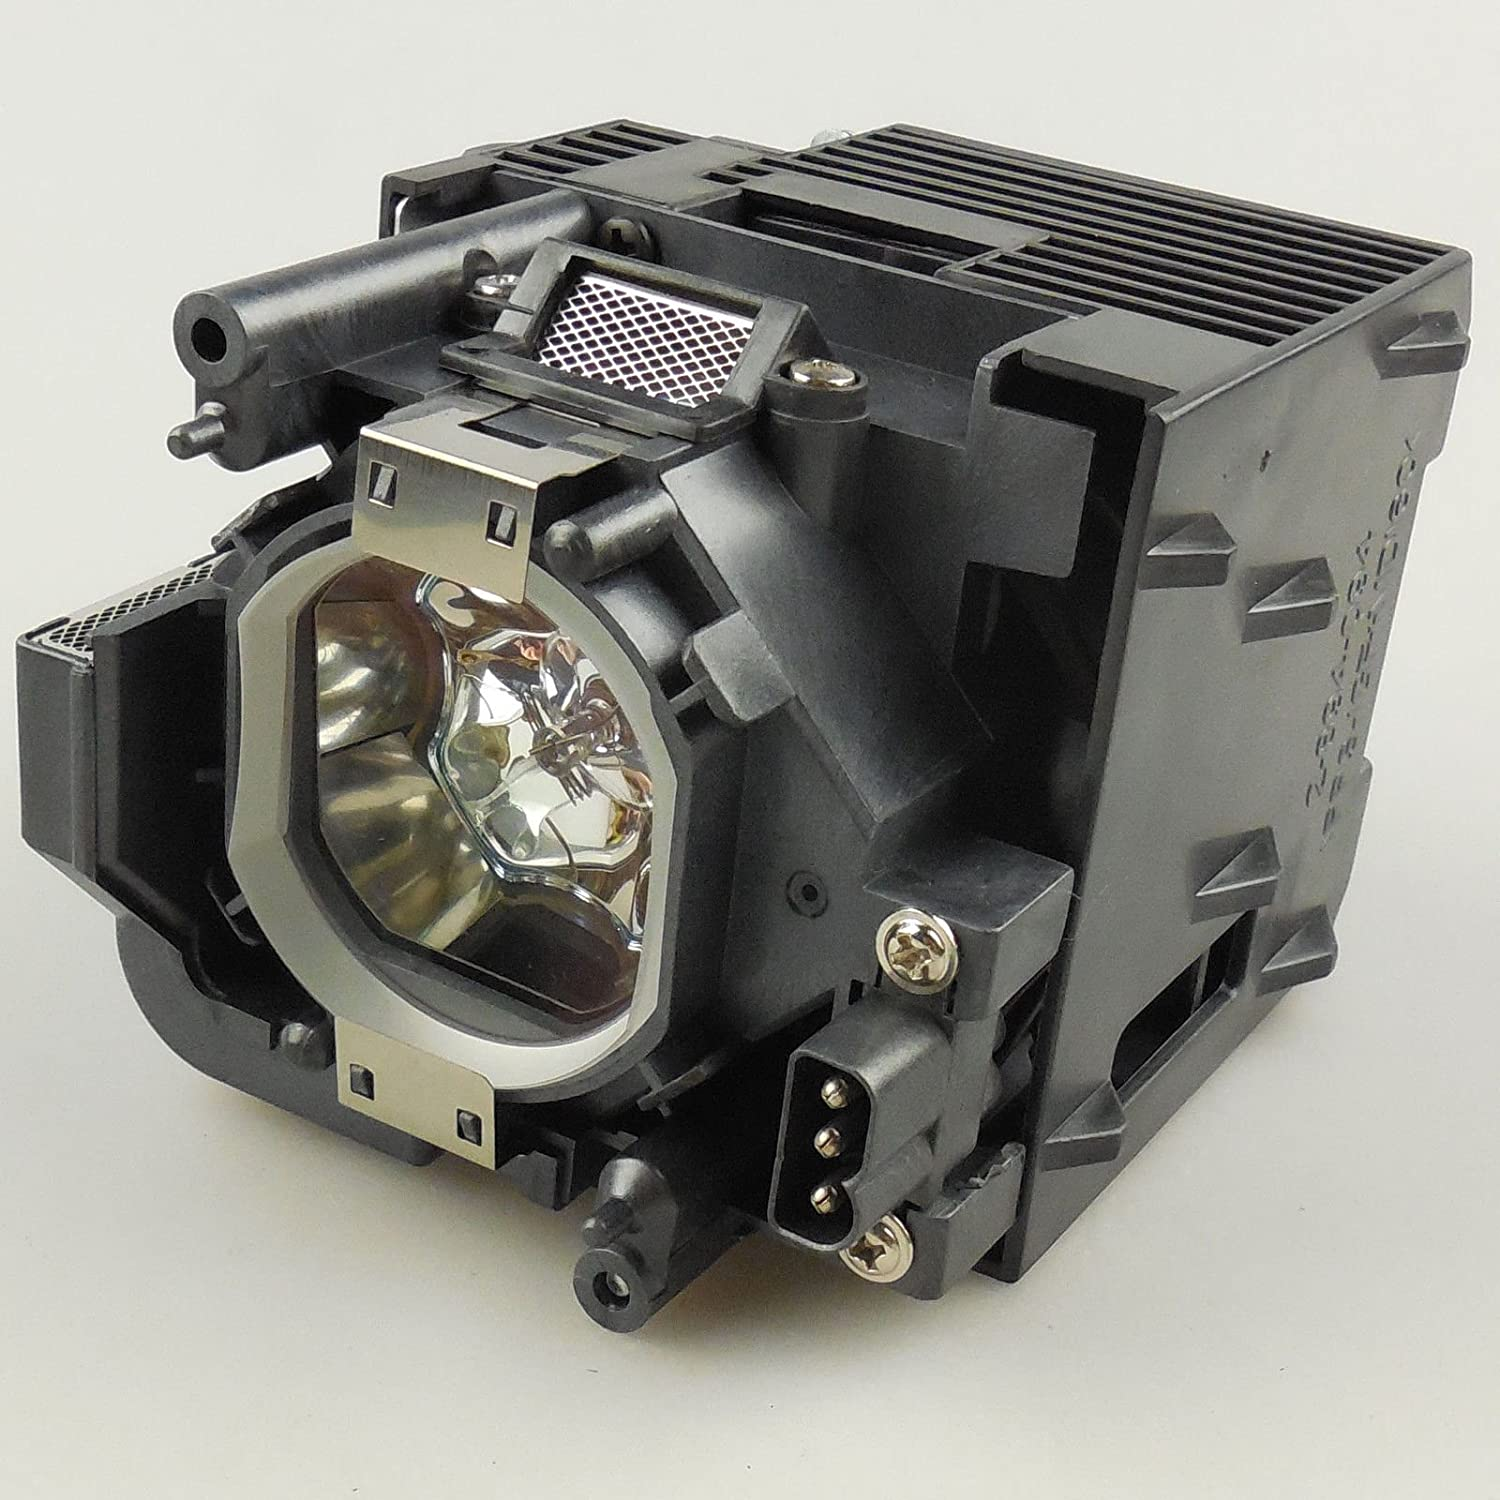 VPL-FE40L VPL-FX41 VPL-FX40L VPL-FX40 CTLAMP LMP-F270 Original Lamp Bulb with Housing Compatible with Sony VPL-FE40 VPL-FW41L VPL-FW41